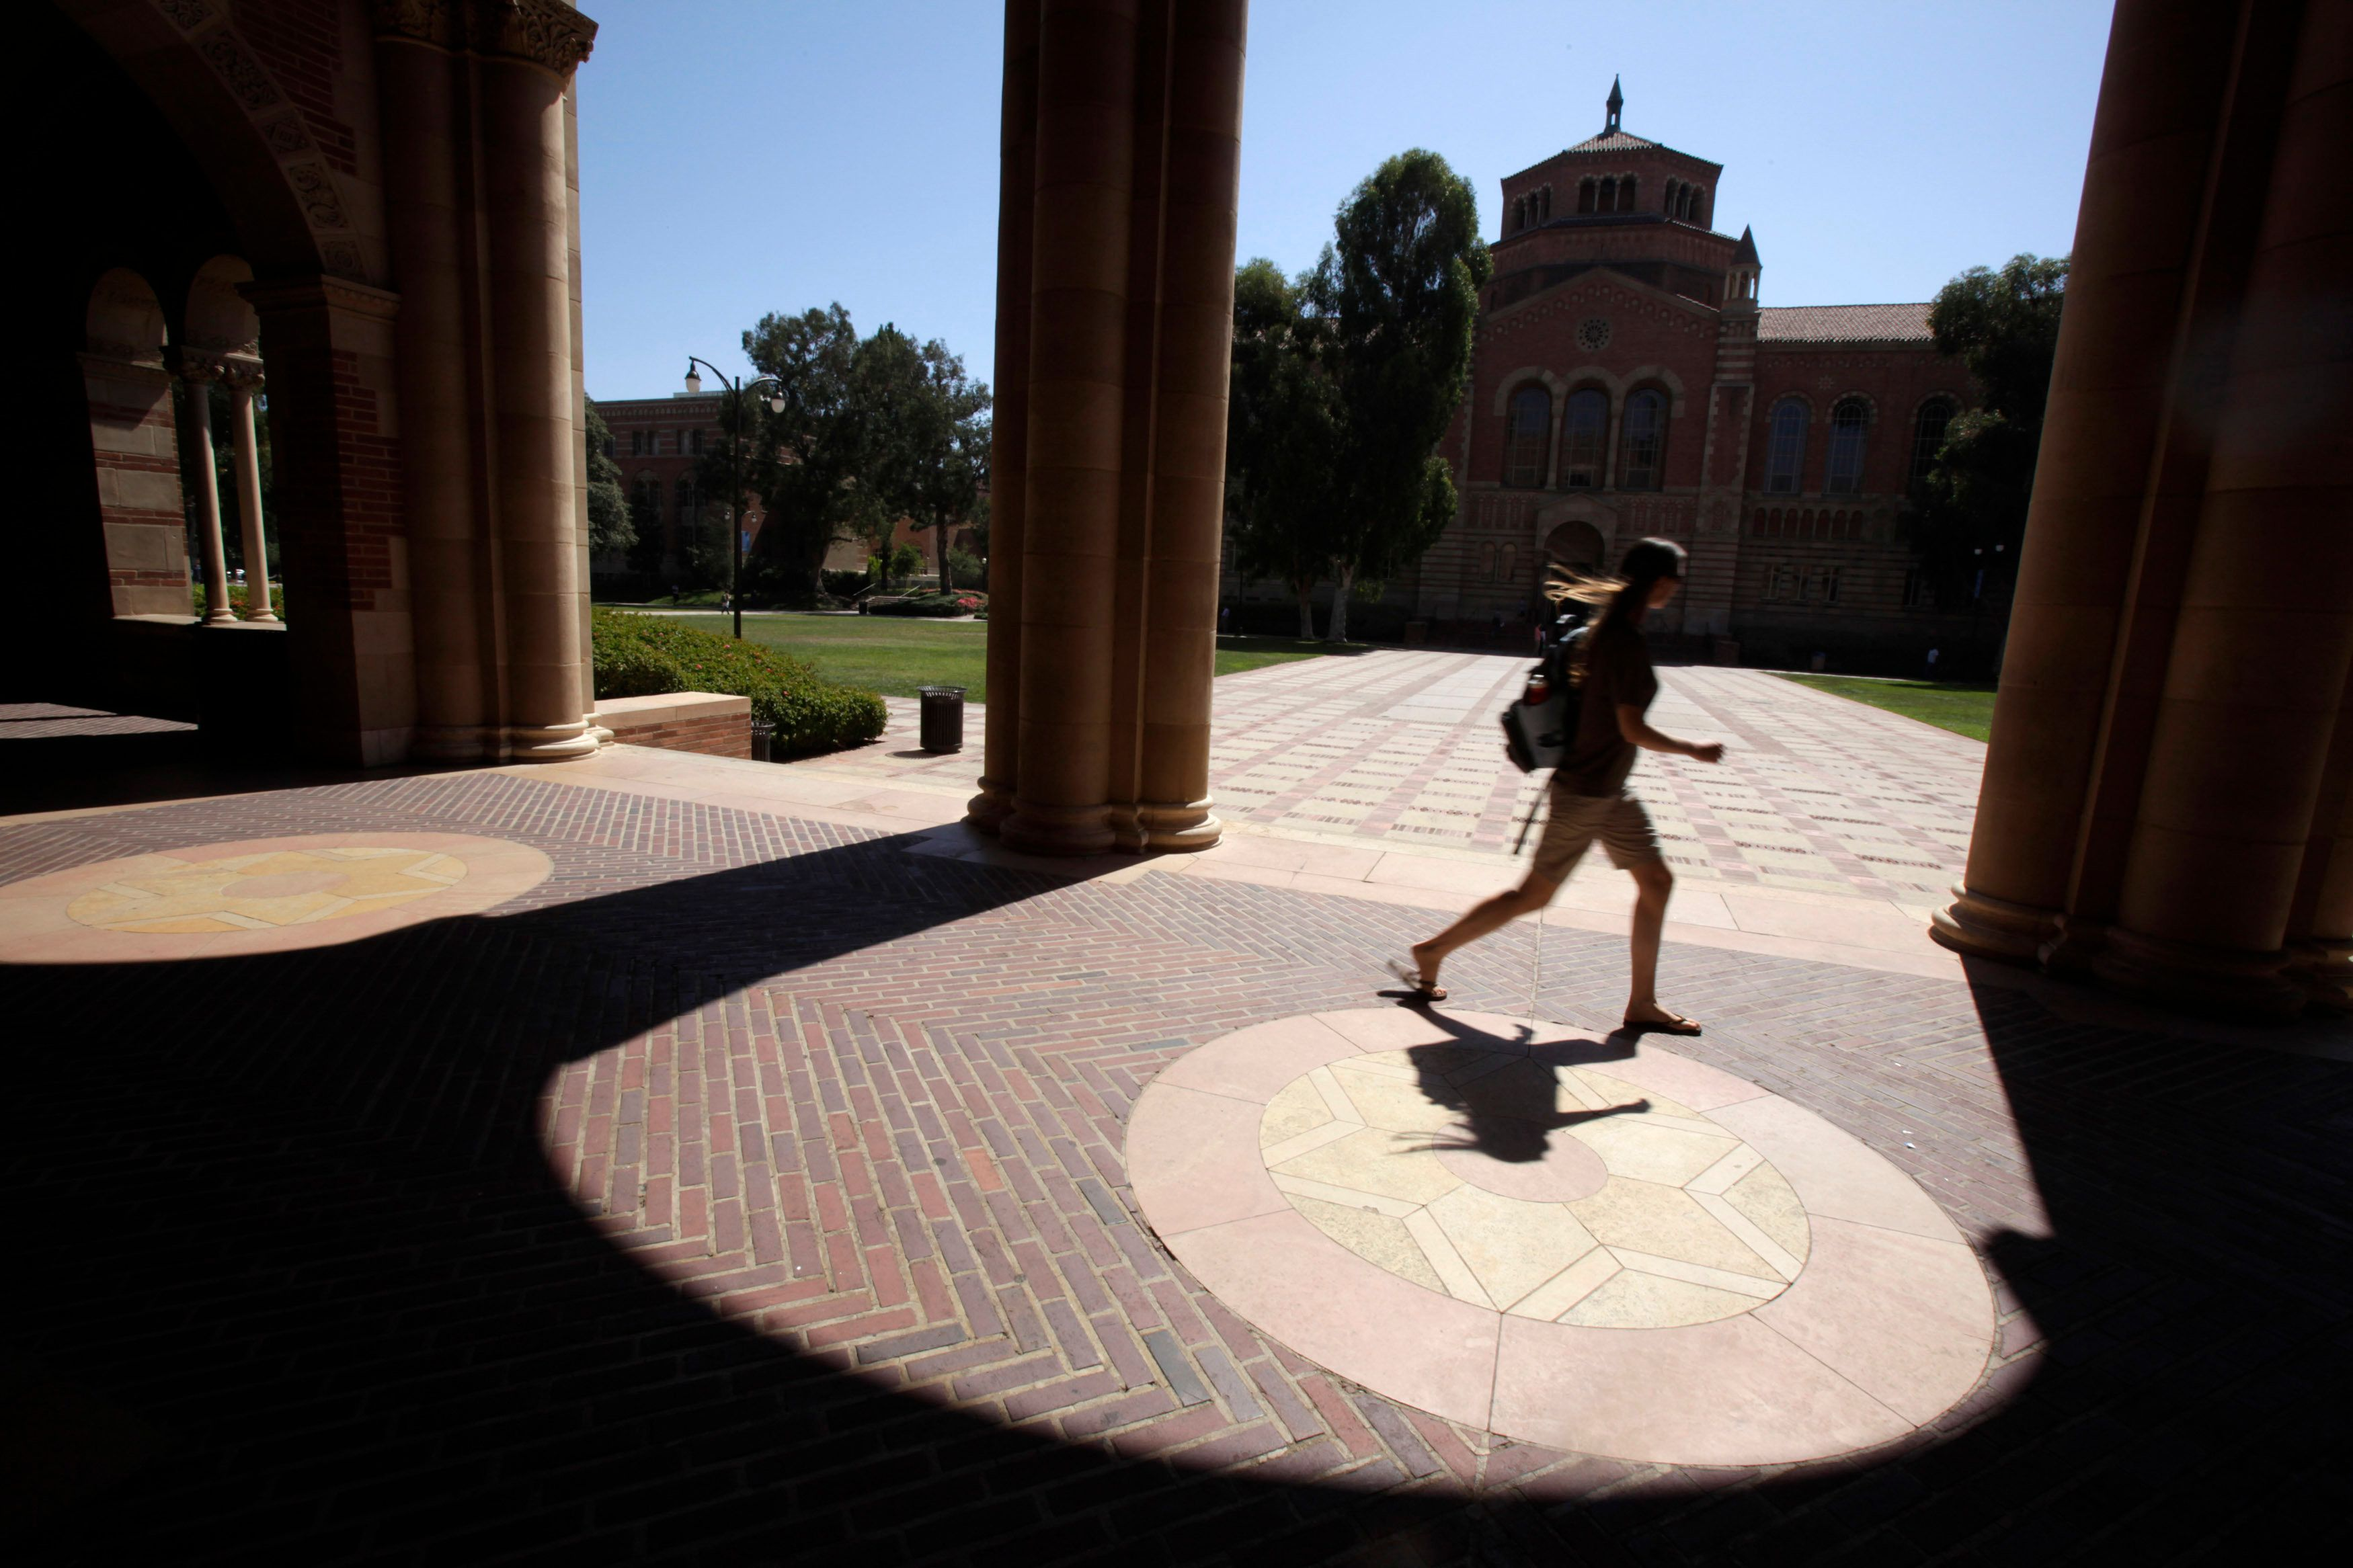 A student walks on the University of California Los Angeles (UCLA) campus in Los Angeles, September 18, 2009.  REUTERS/Lucy Nicholson (UNITED STATES EDUCATION)